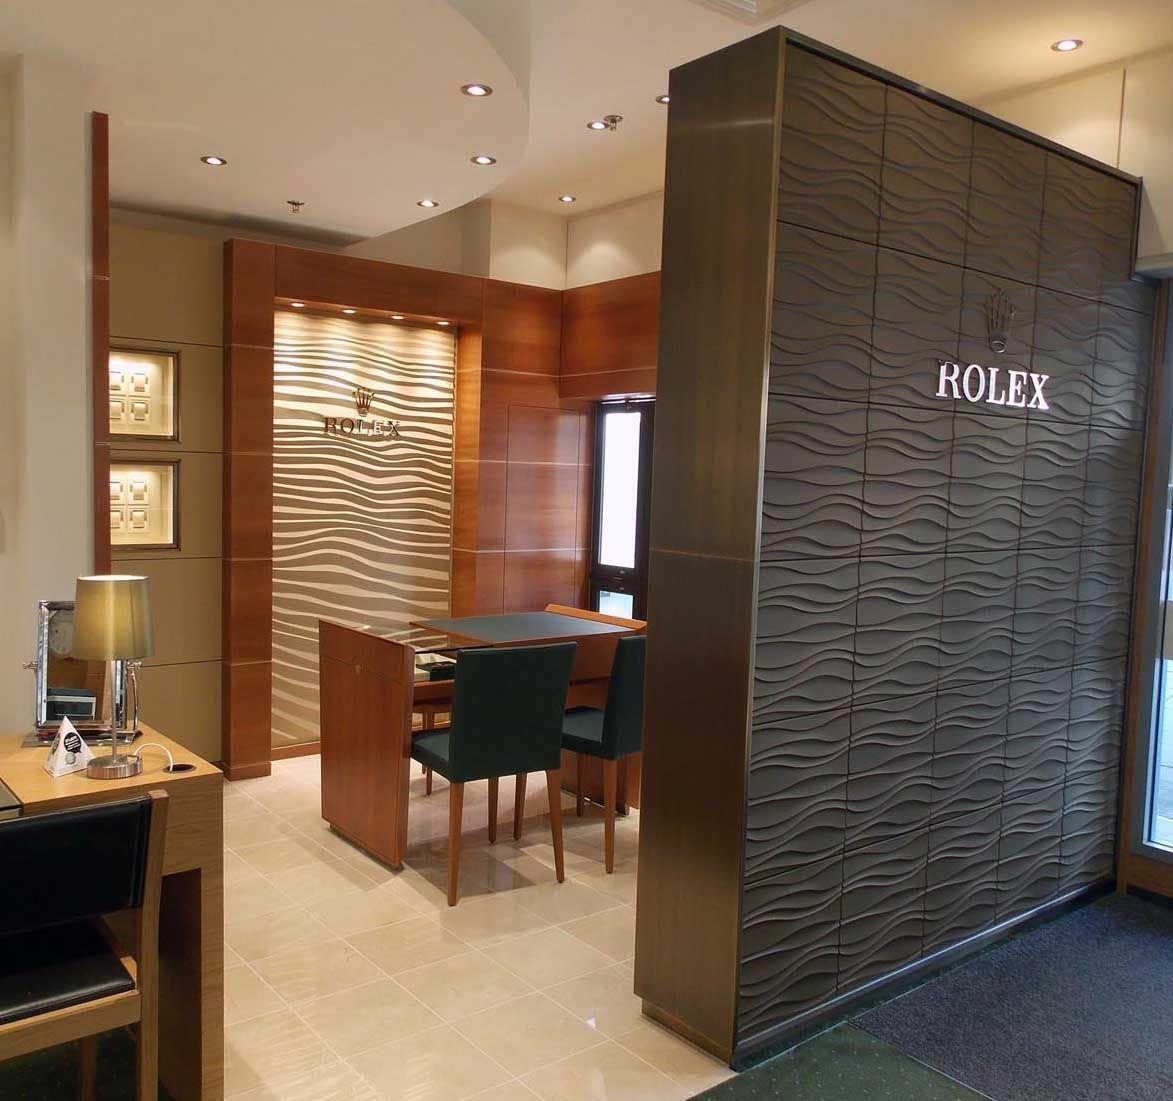 Rolex shop interior google search retail design for Interior design negozi